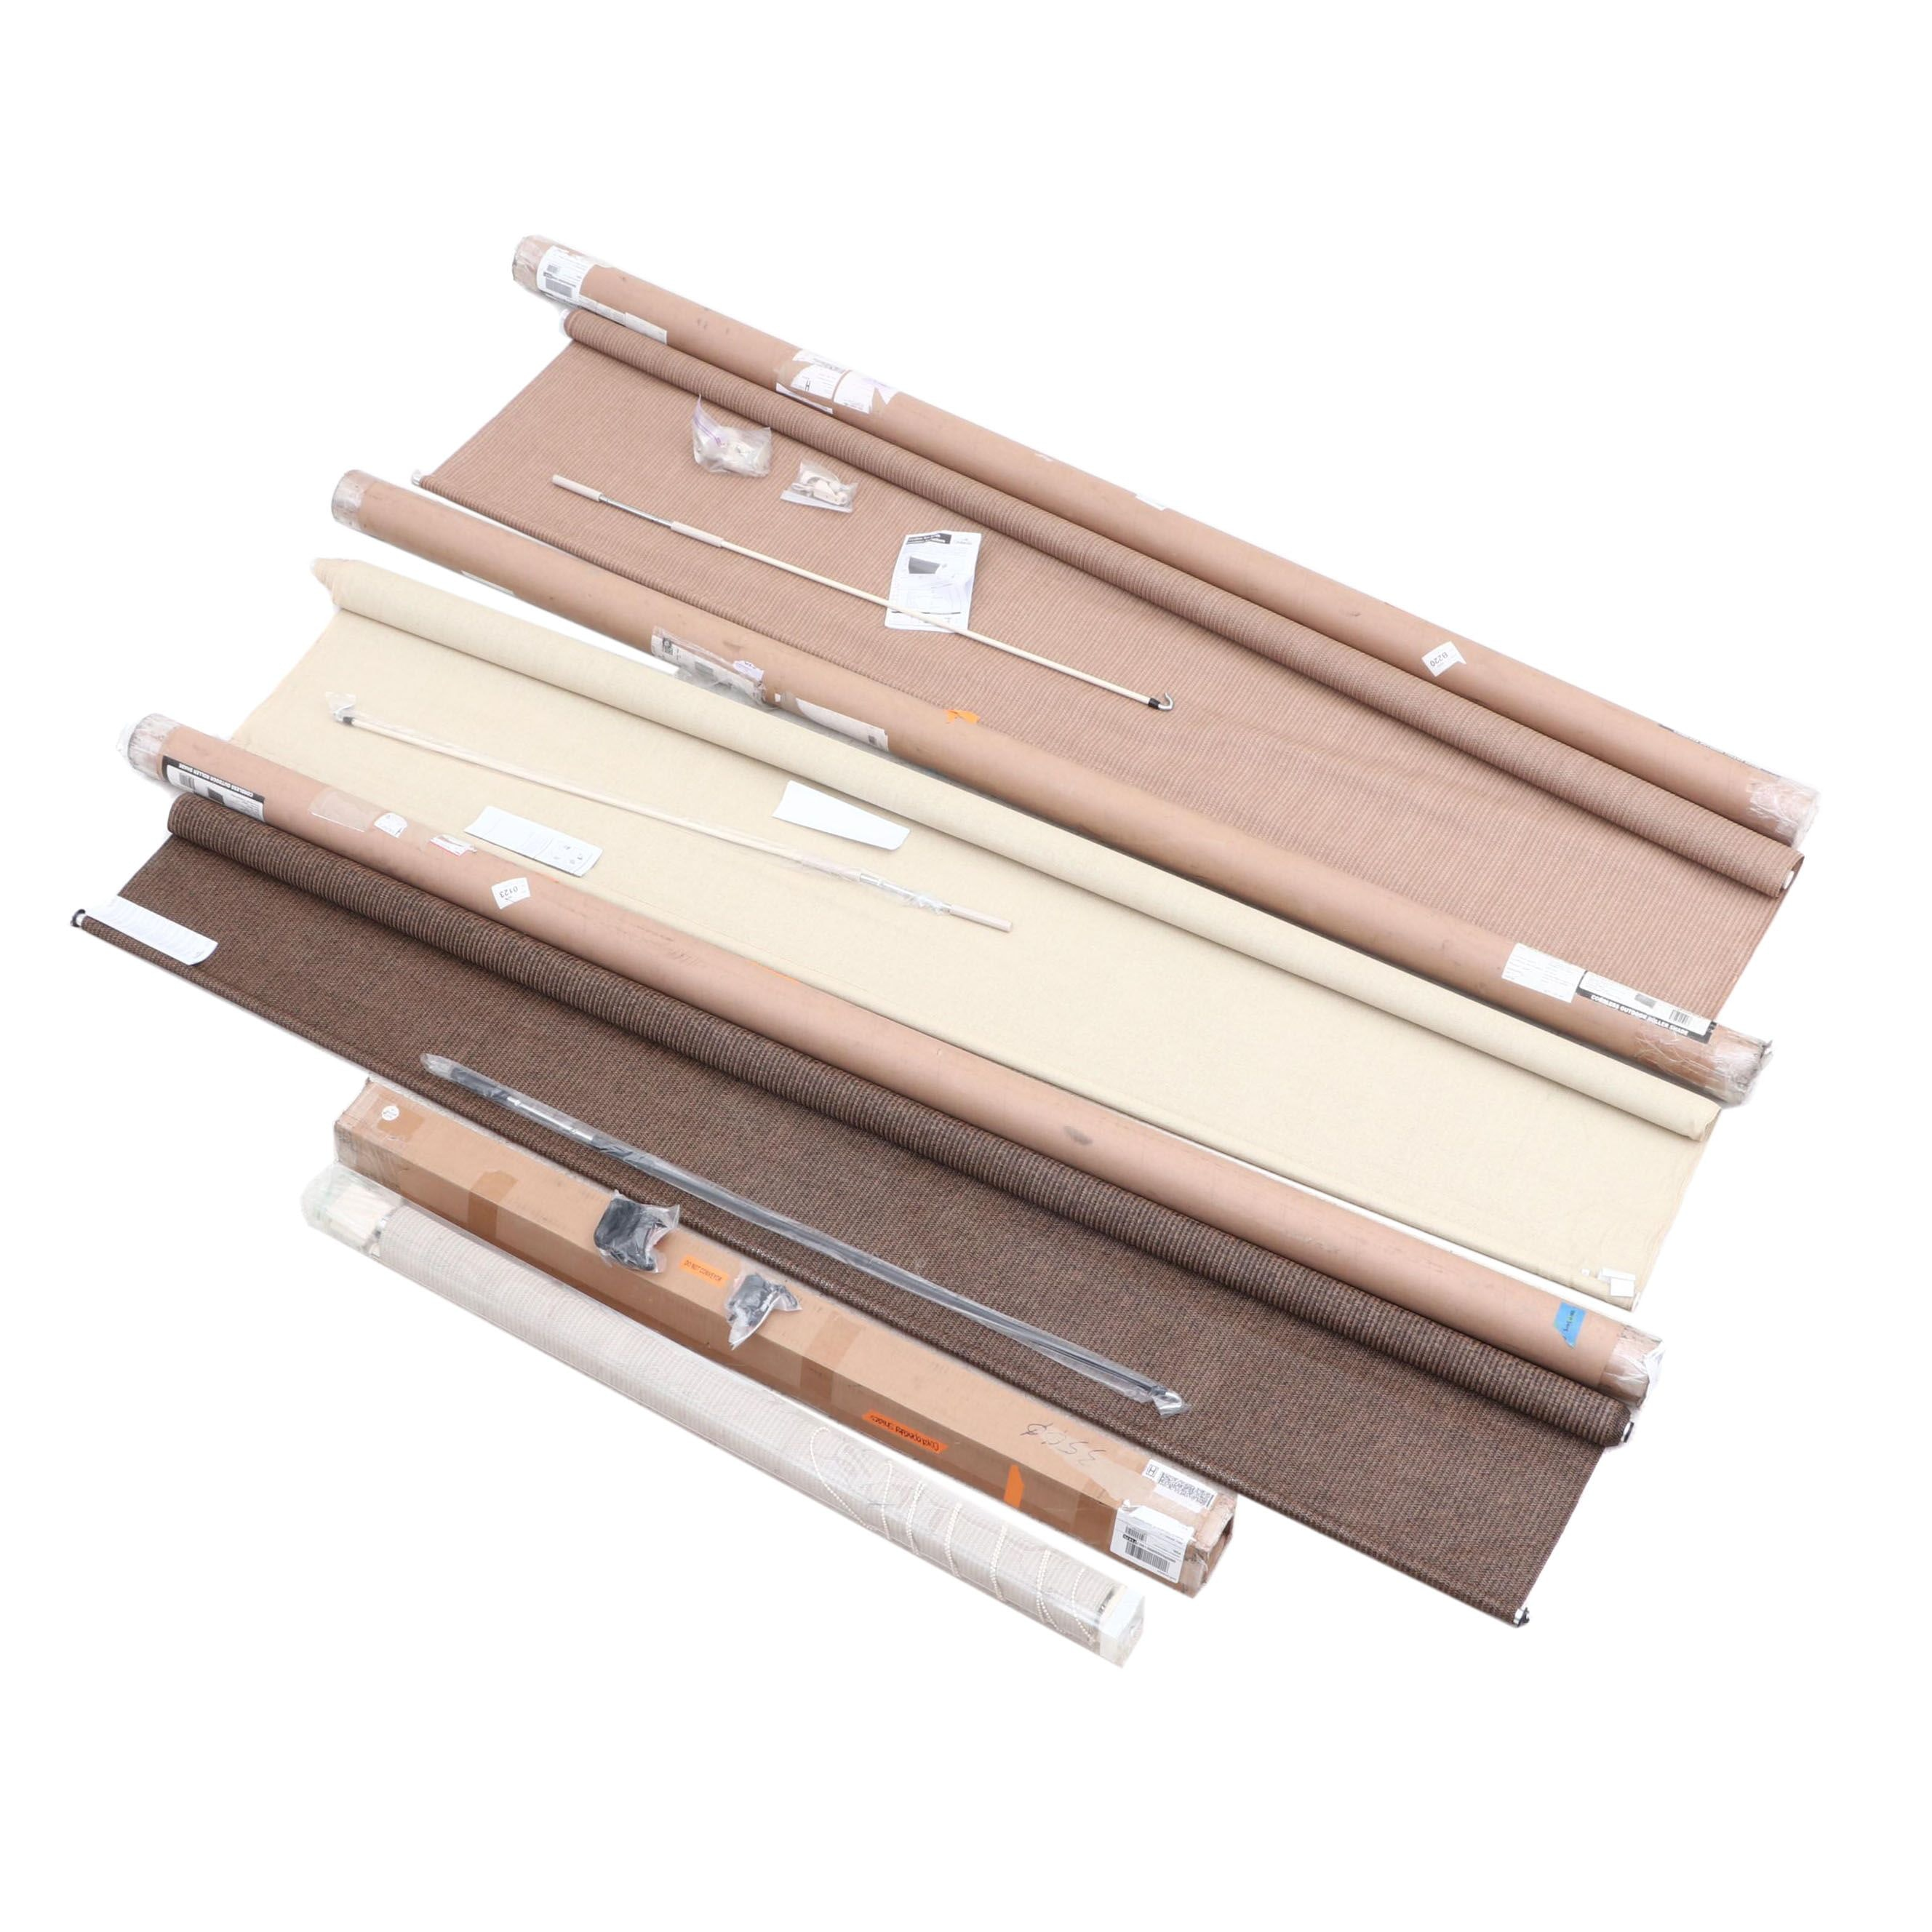 Coolaroo Outdoor Roller Shades in Sesame, Almond, and Mocha